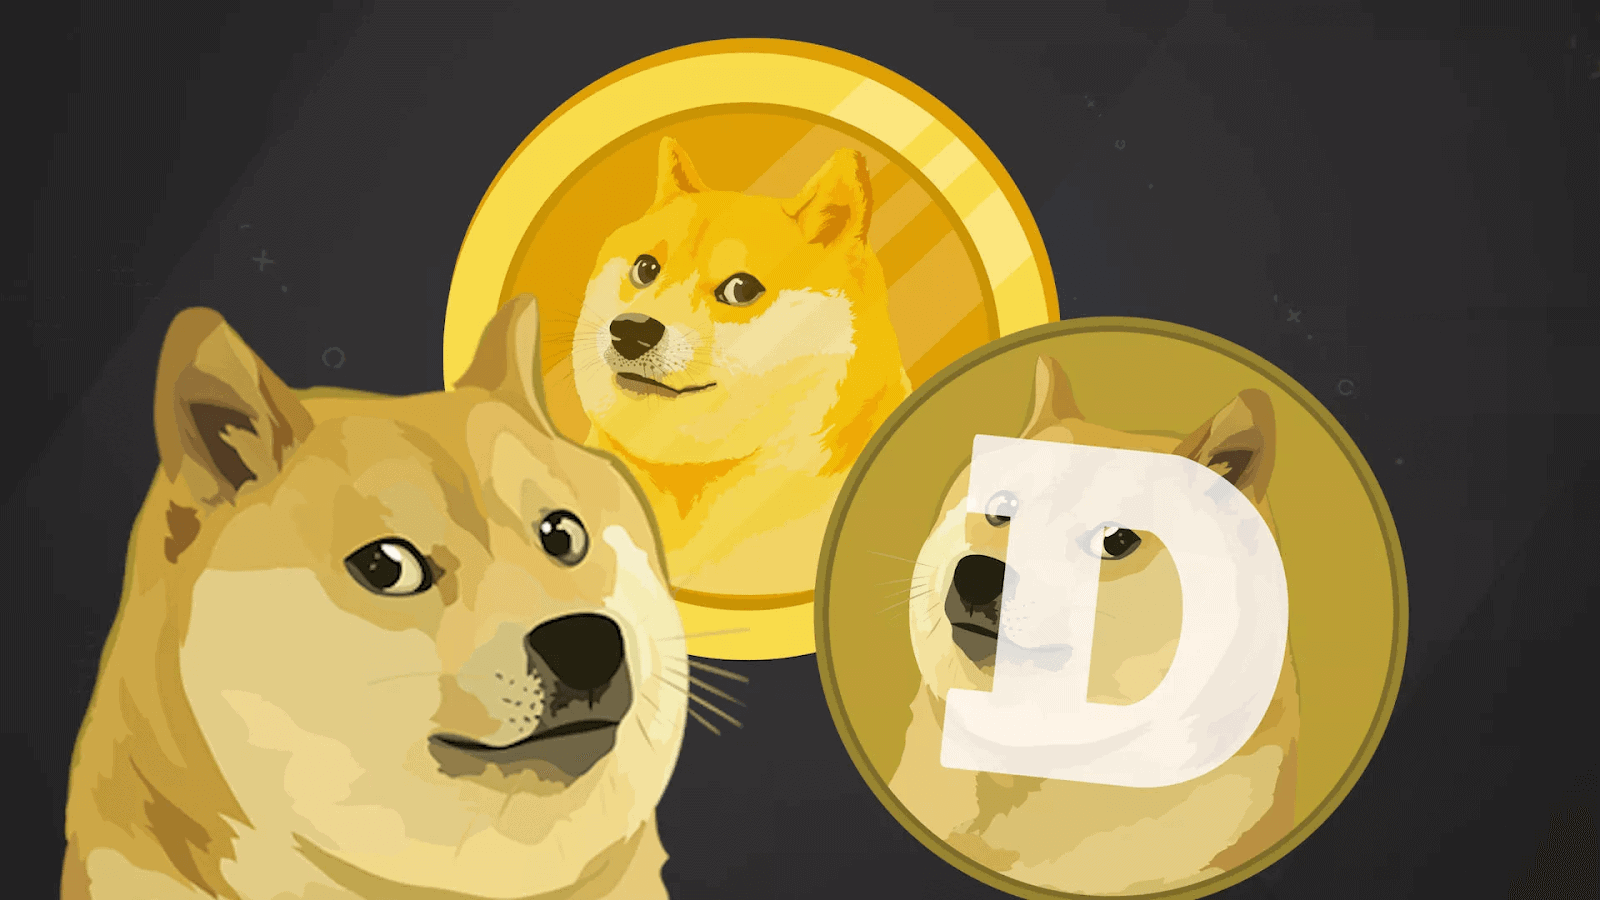 cryptocurrency exchange dogecoin